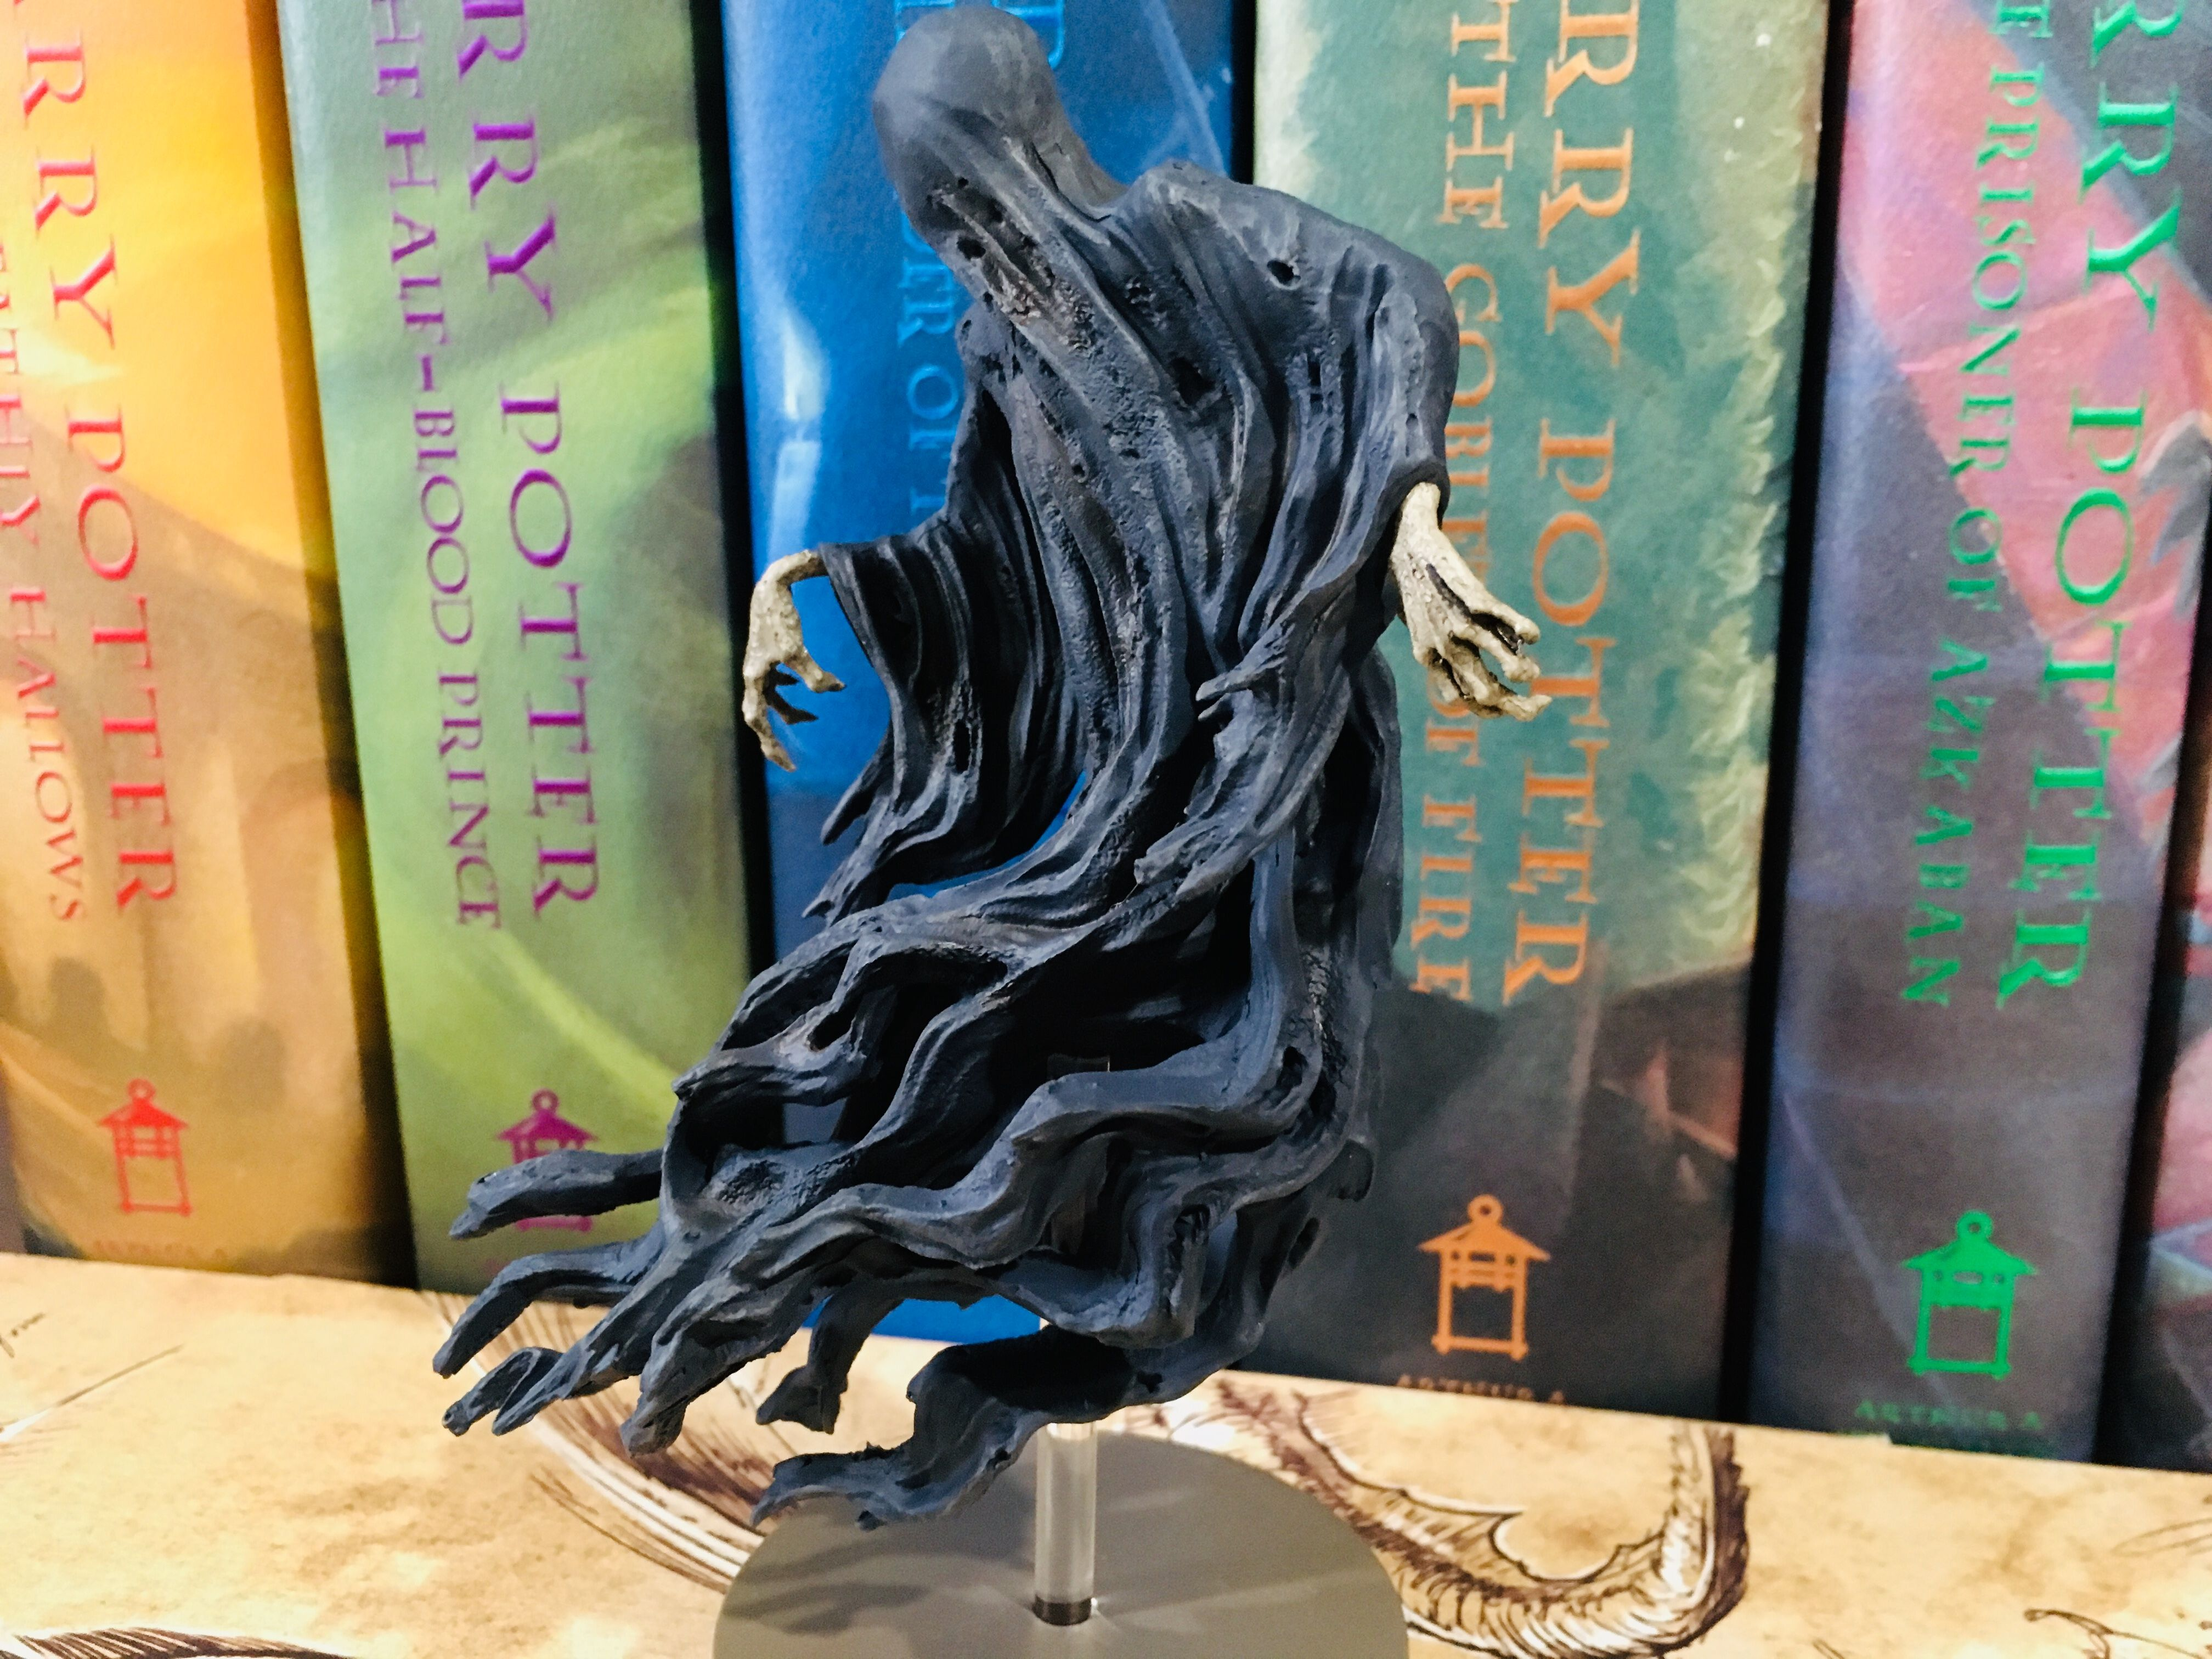 Finishing with a view from the opposite side, the Eaglemoss Dementor is wonderfully detailed from any direction.